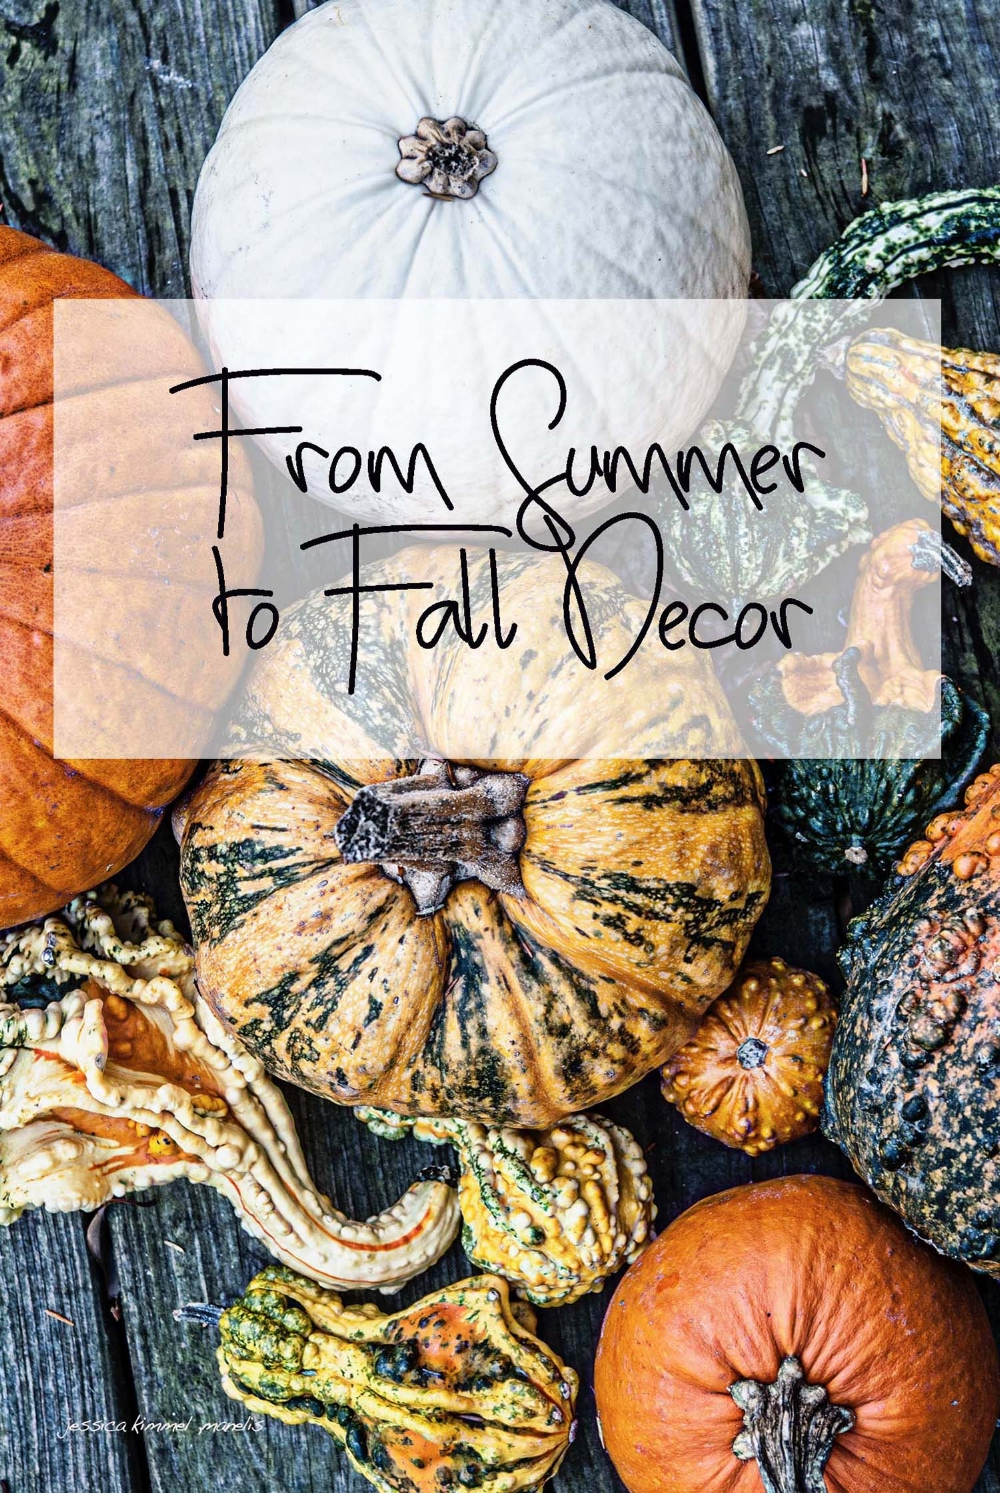 from summer to fall decor copy.jpg